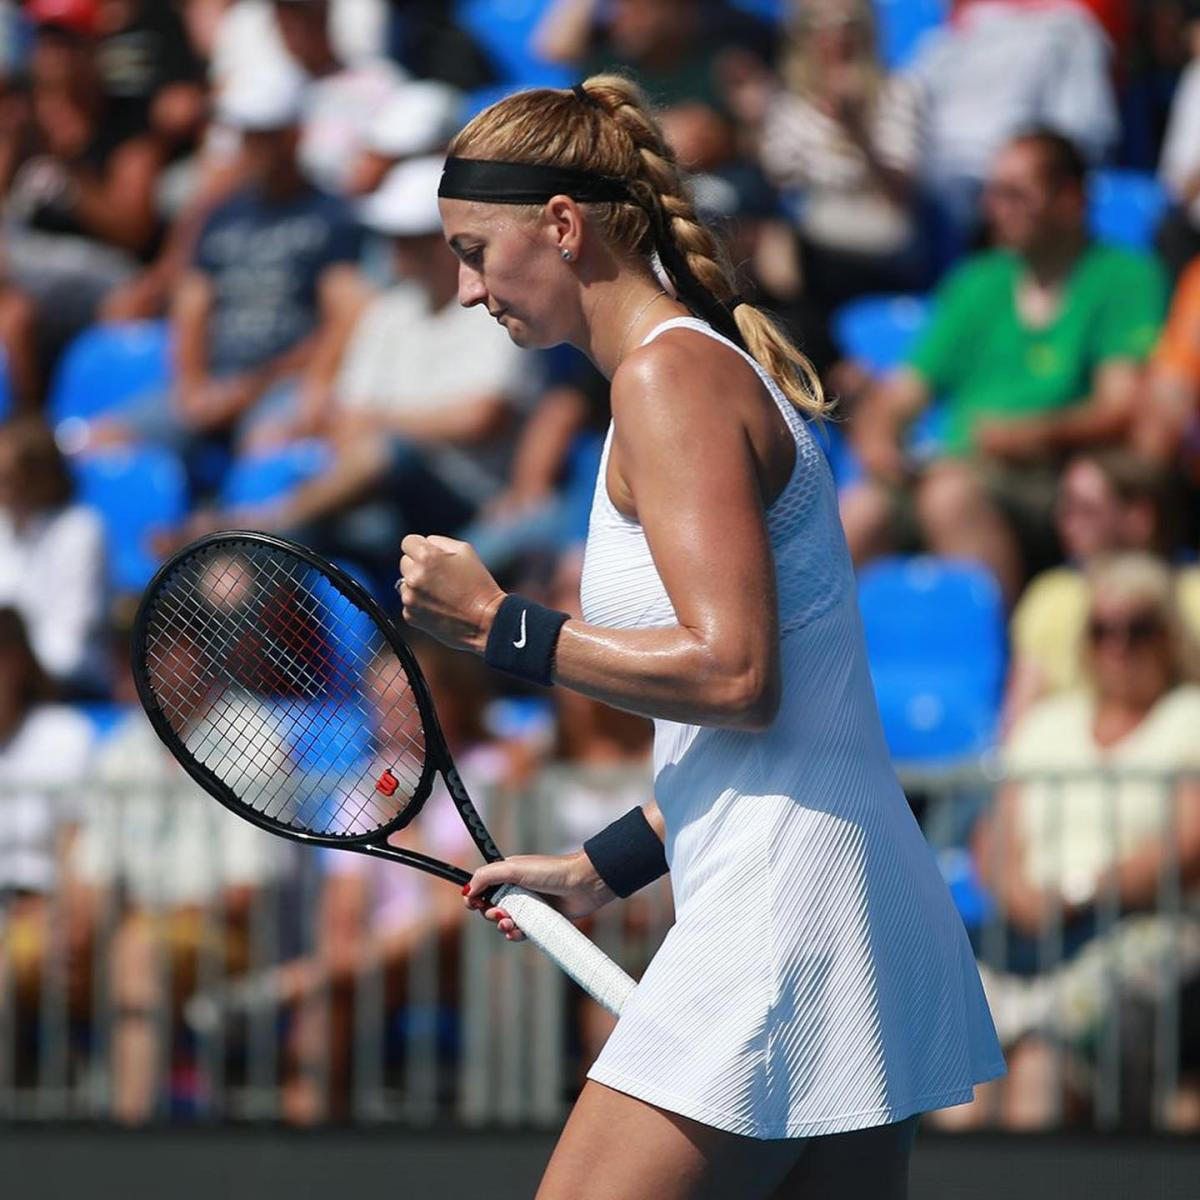 Kvitova now looks ahead to the nearing Tokyo Olympics which is set to be her third appearance at the Olympics in her career. Photo: